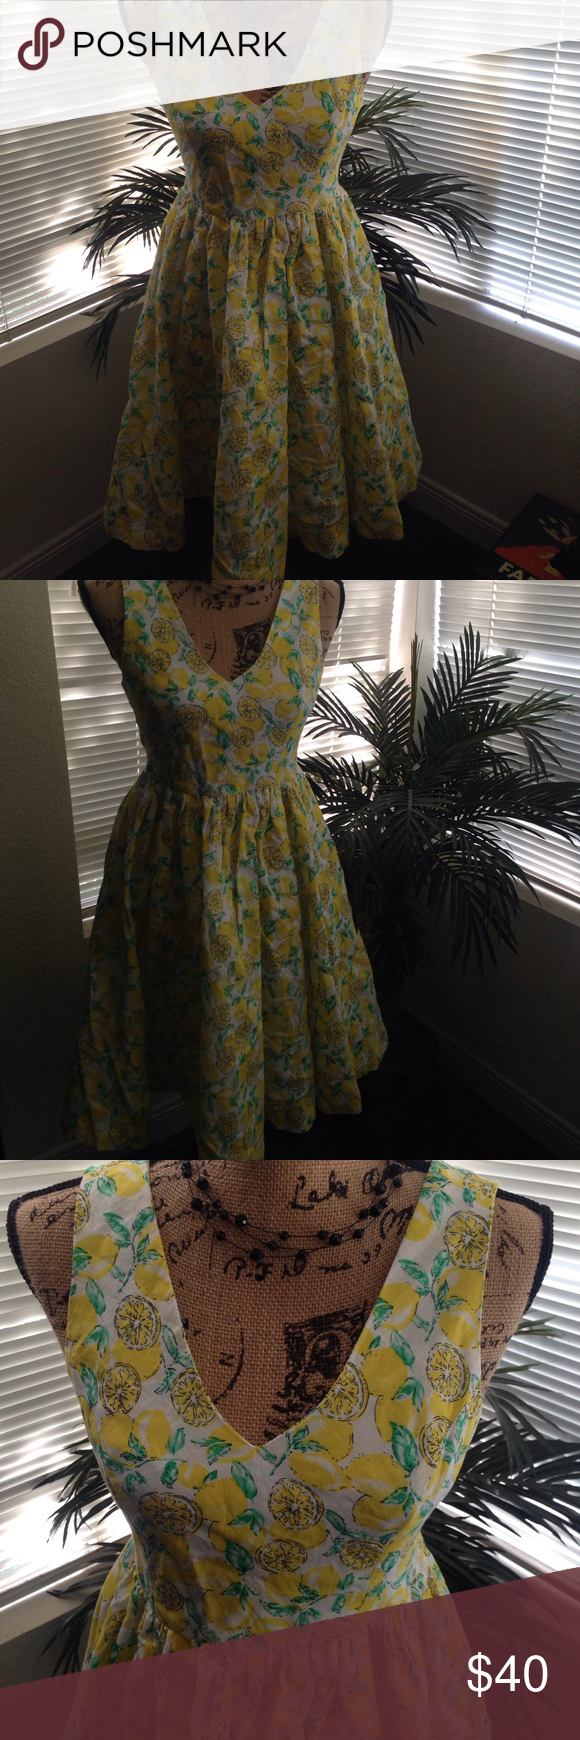 Lemon Print Dapper Day Dress Vintage inspired lemon print dress. Brand new. Never worn. Bought at Dapper Day Disney Expo. Perfect for Dapper Day or all Spring occasions. Fits an Small. Dresses